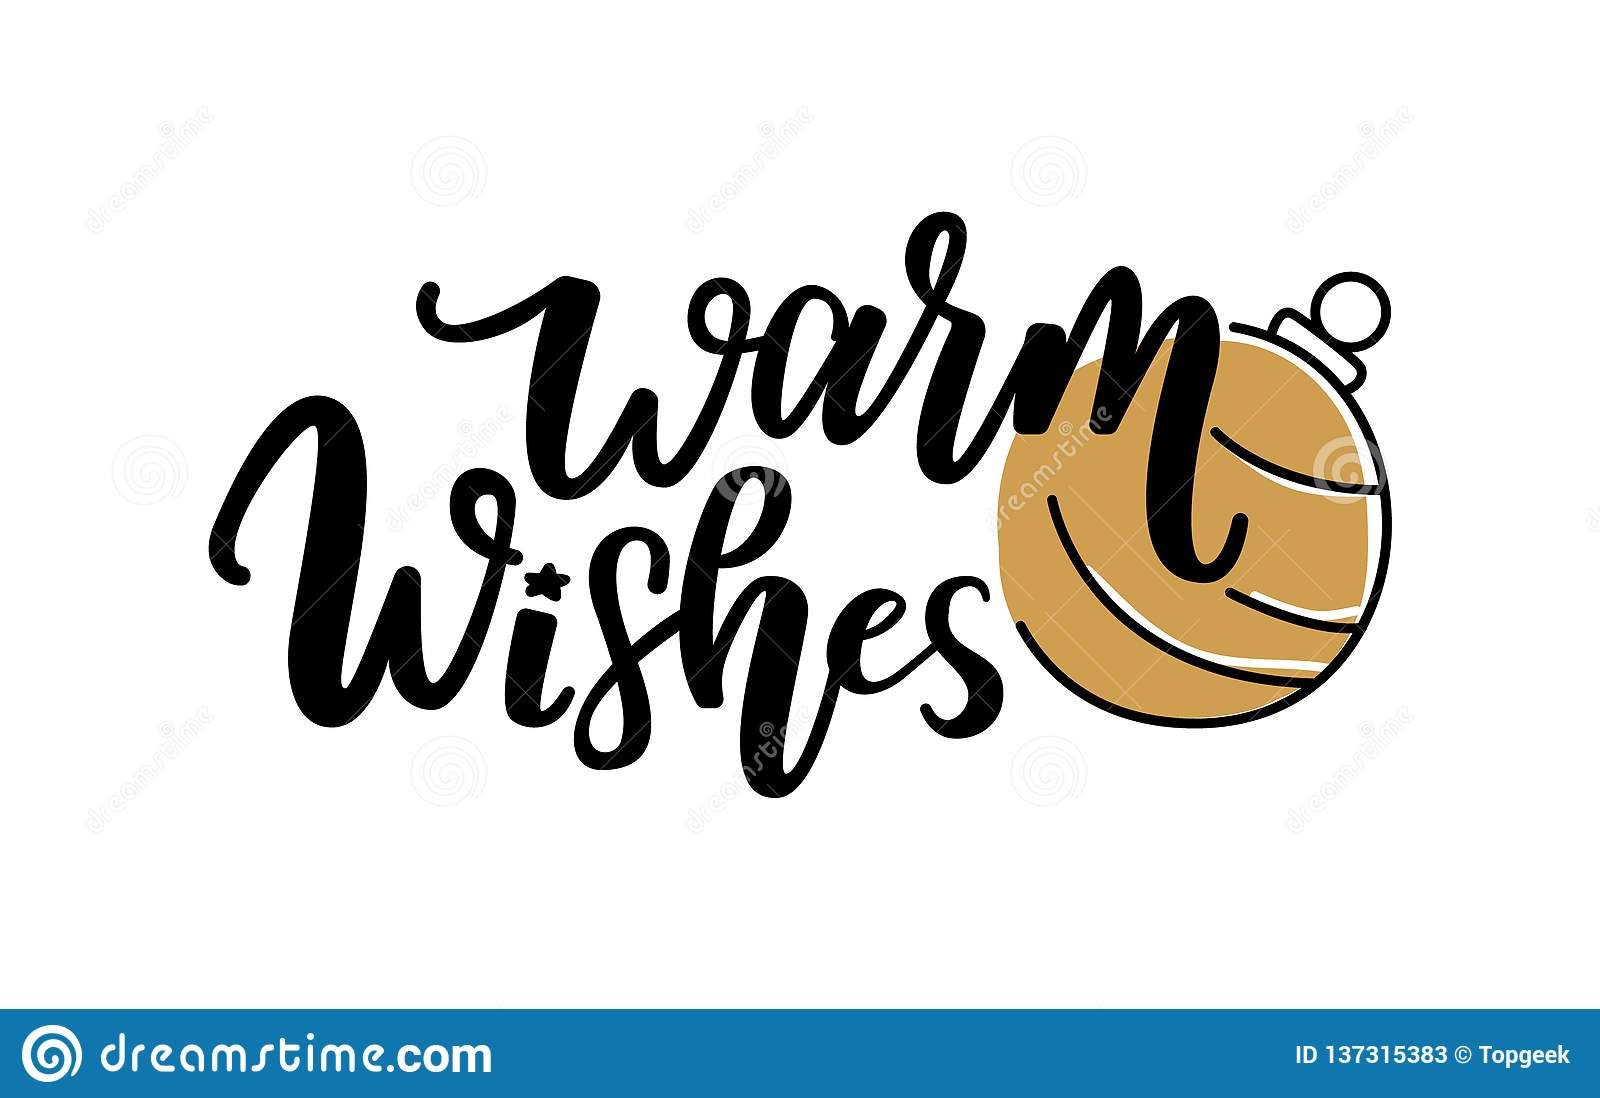 warm wishes quote merry christmas greetings text stock vector